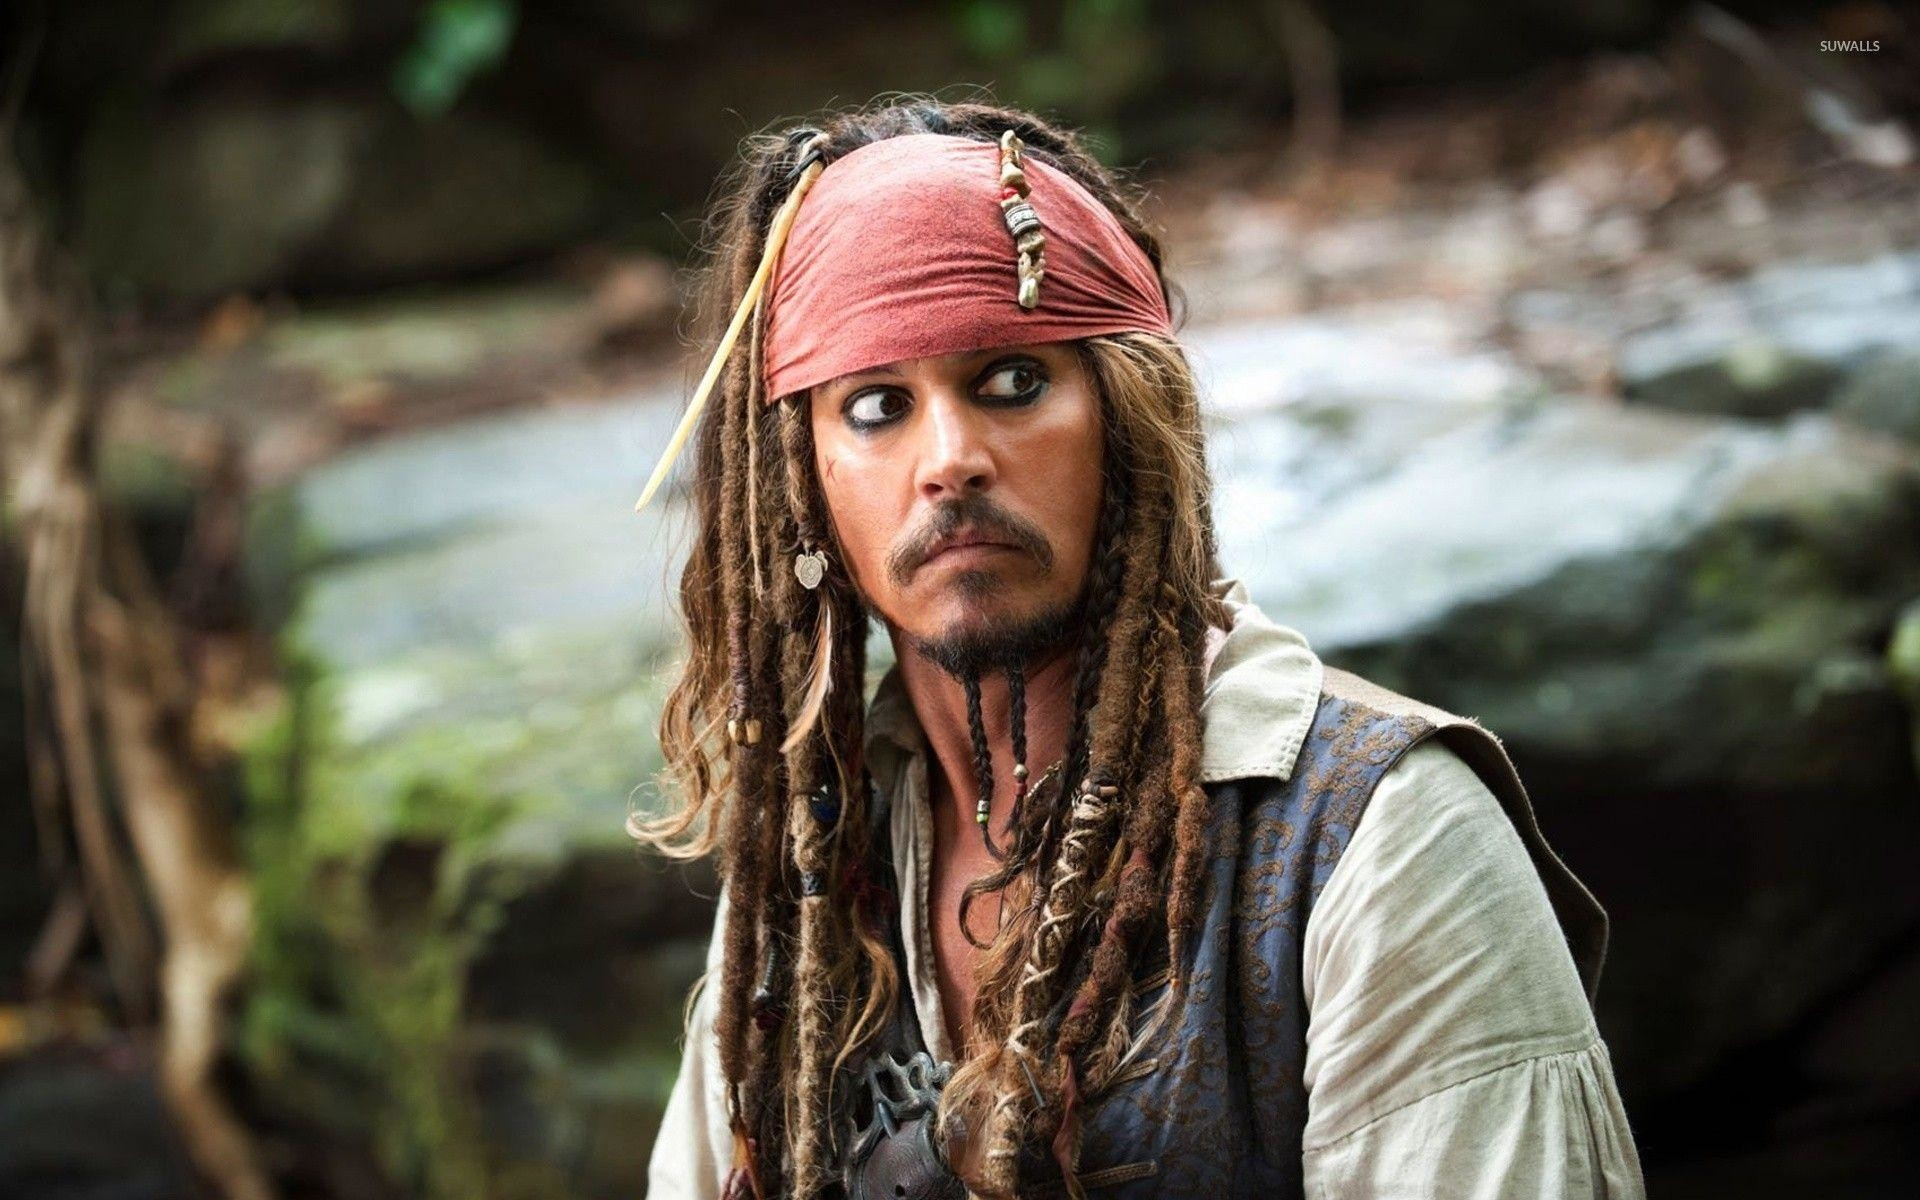 Captain Jack Sparrow – The Pirates of the Caribbean wallpaper .